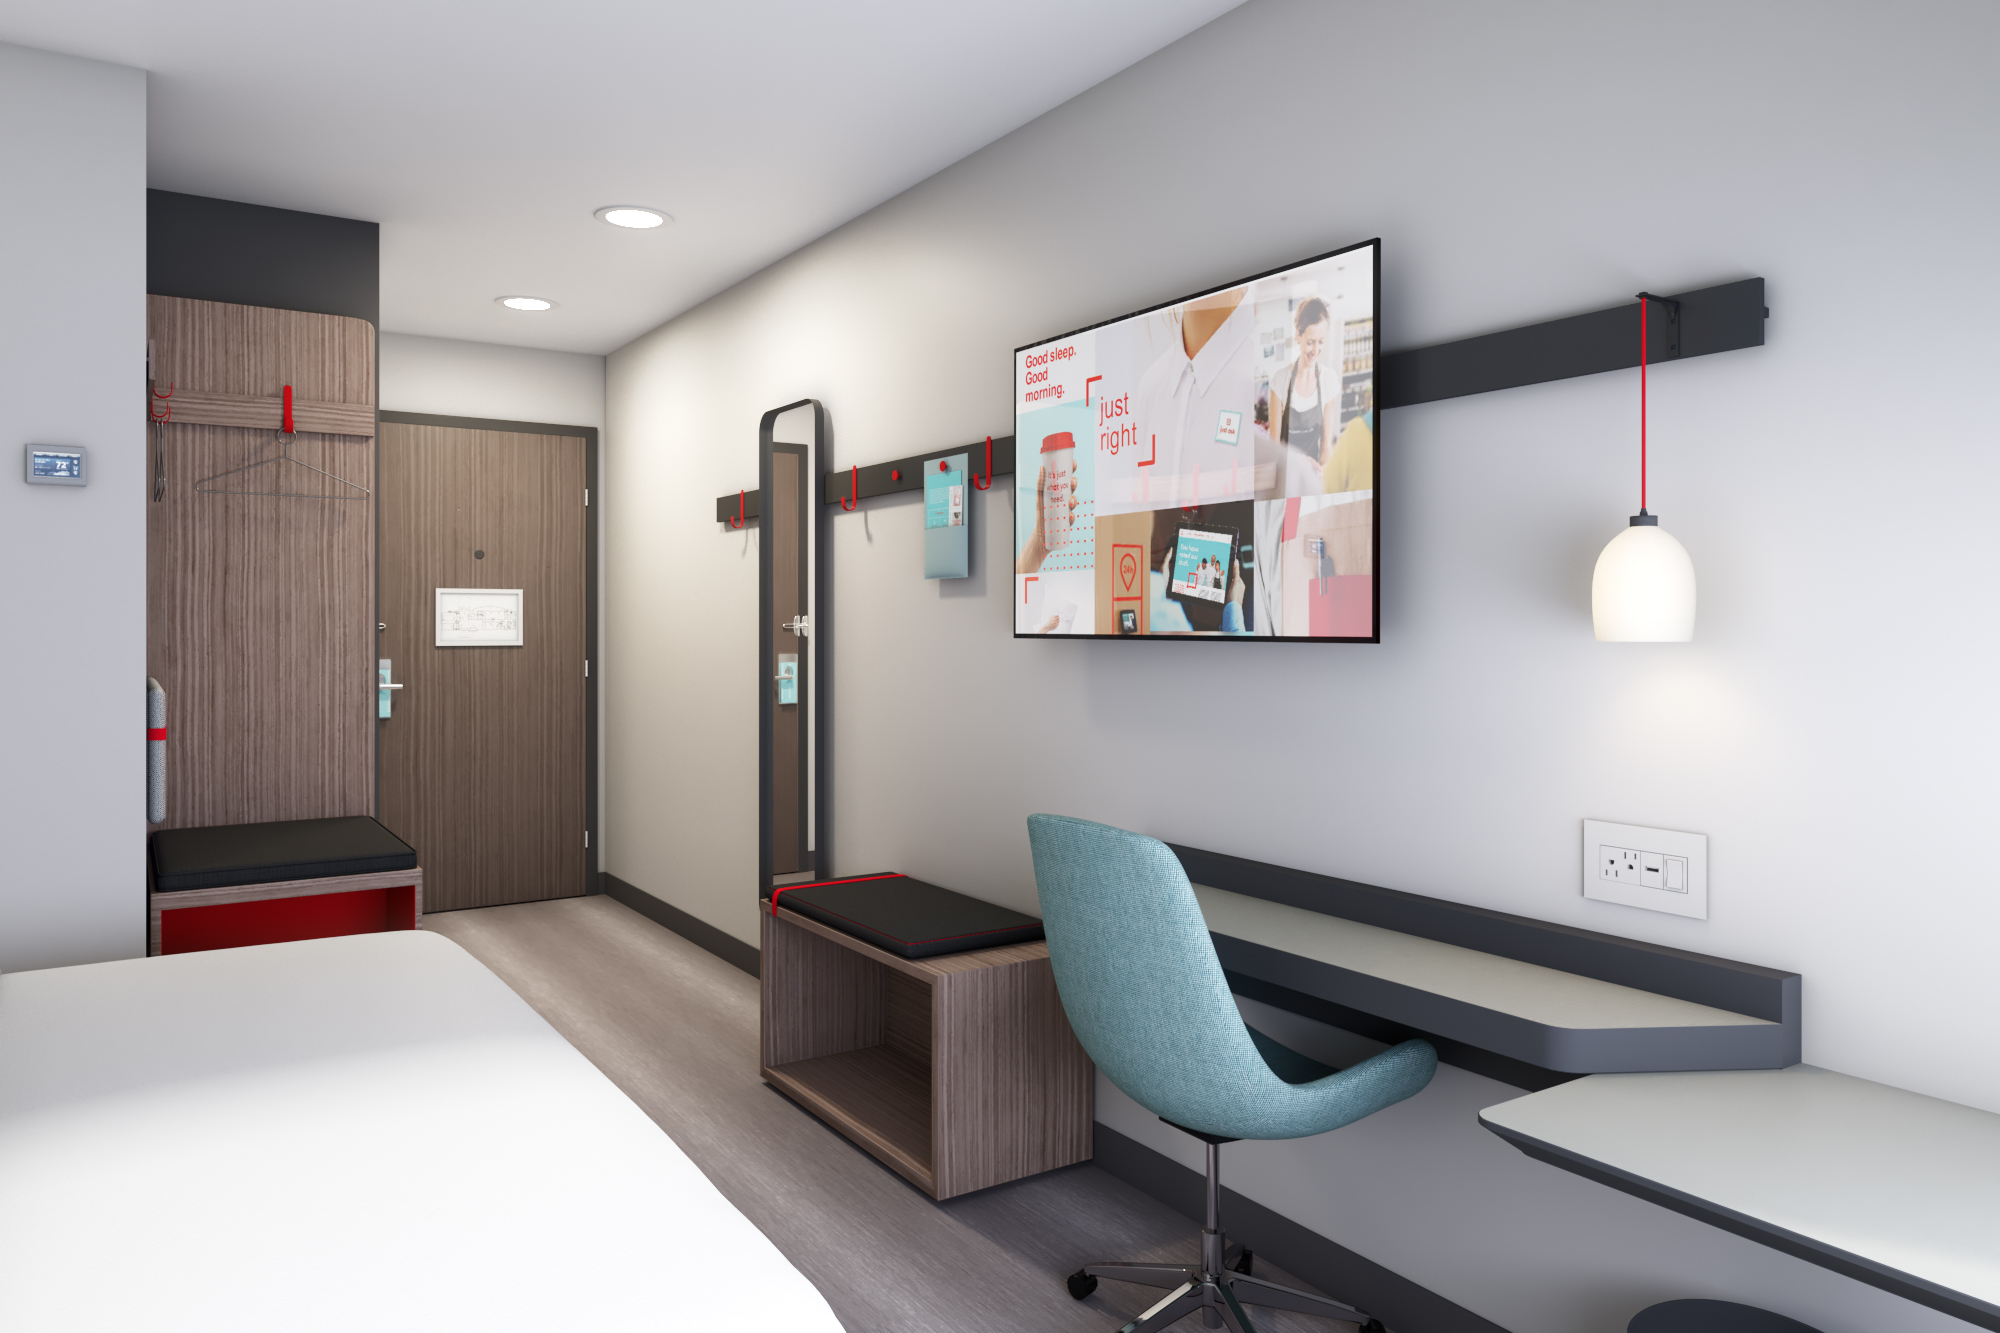 Following guest research, the guestrooms have sound-reducing elements and open storage spaces.